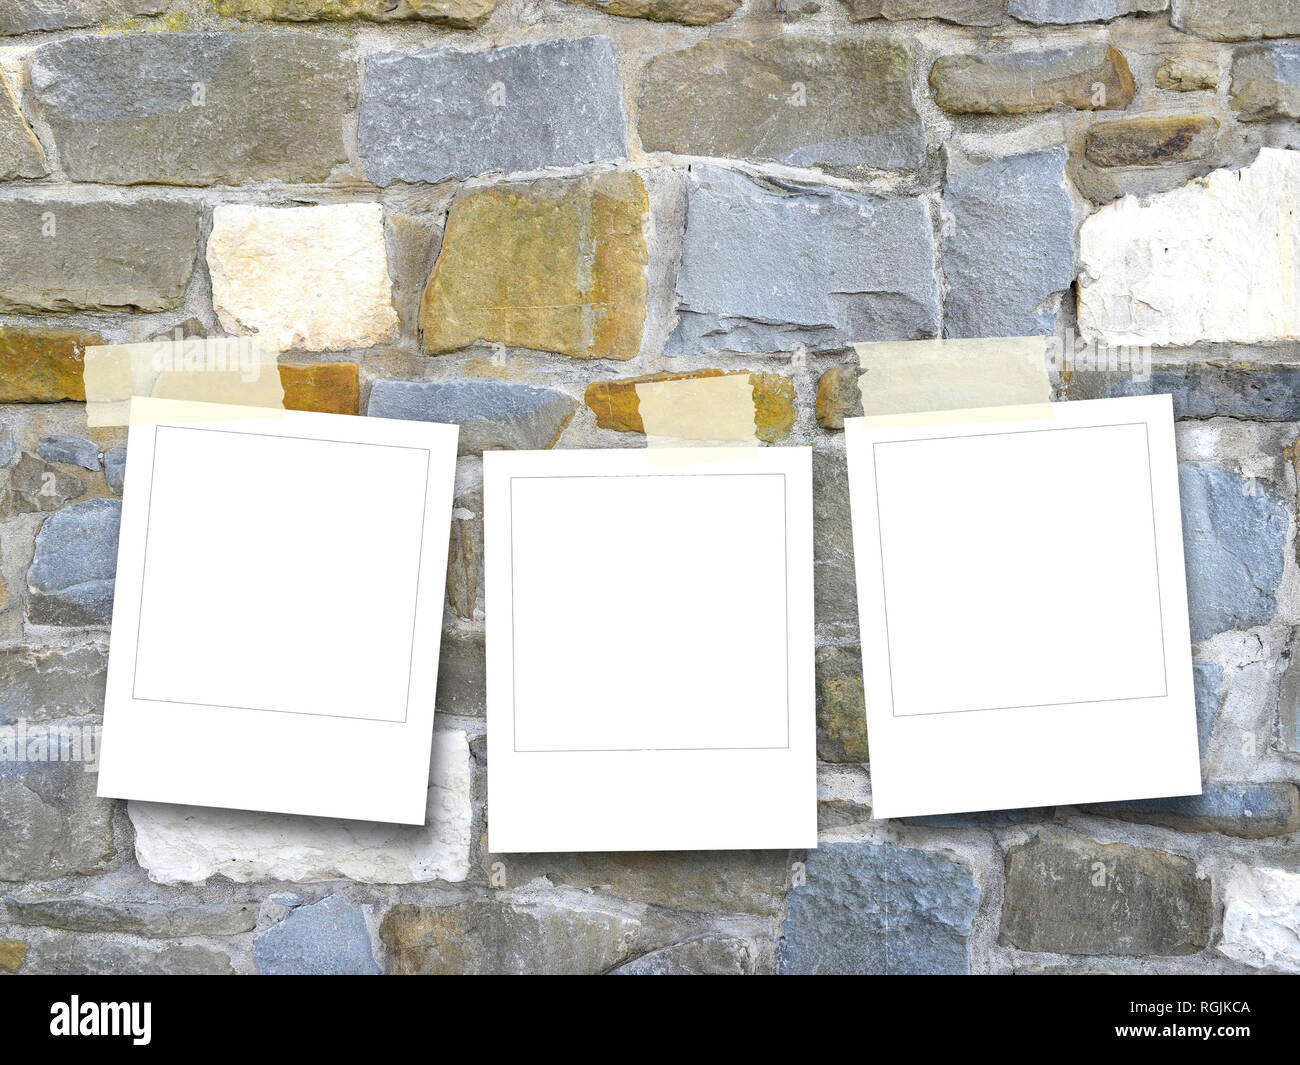 Three blank instant square photo frames on multicolored stone wall background - Stock Image